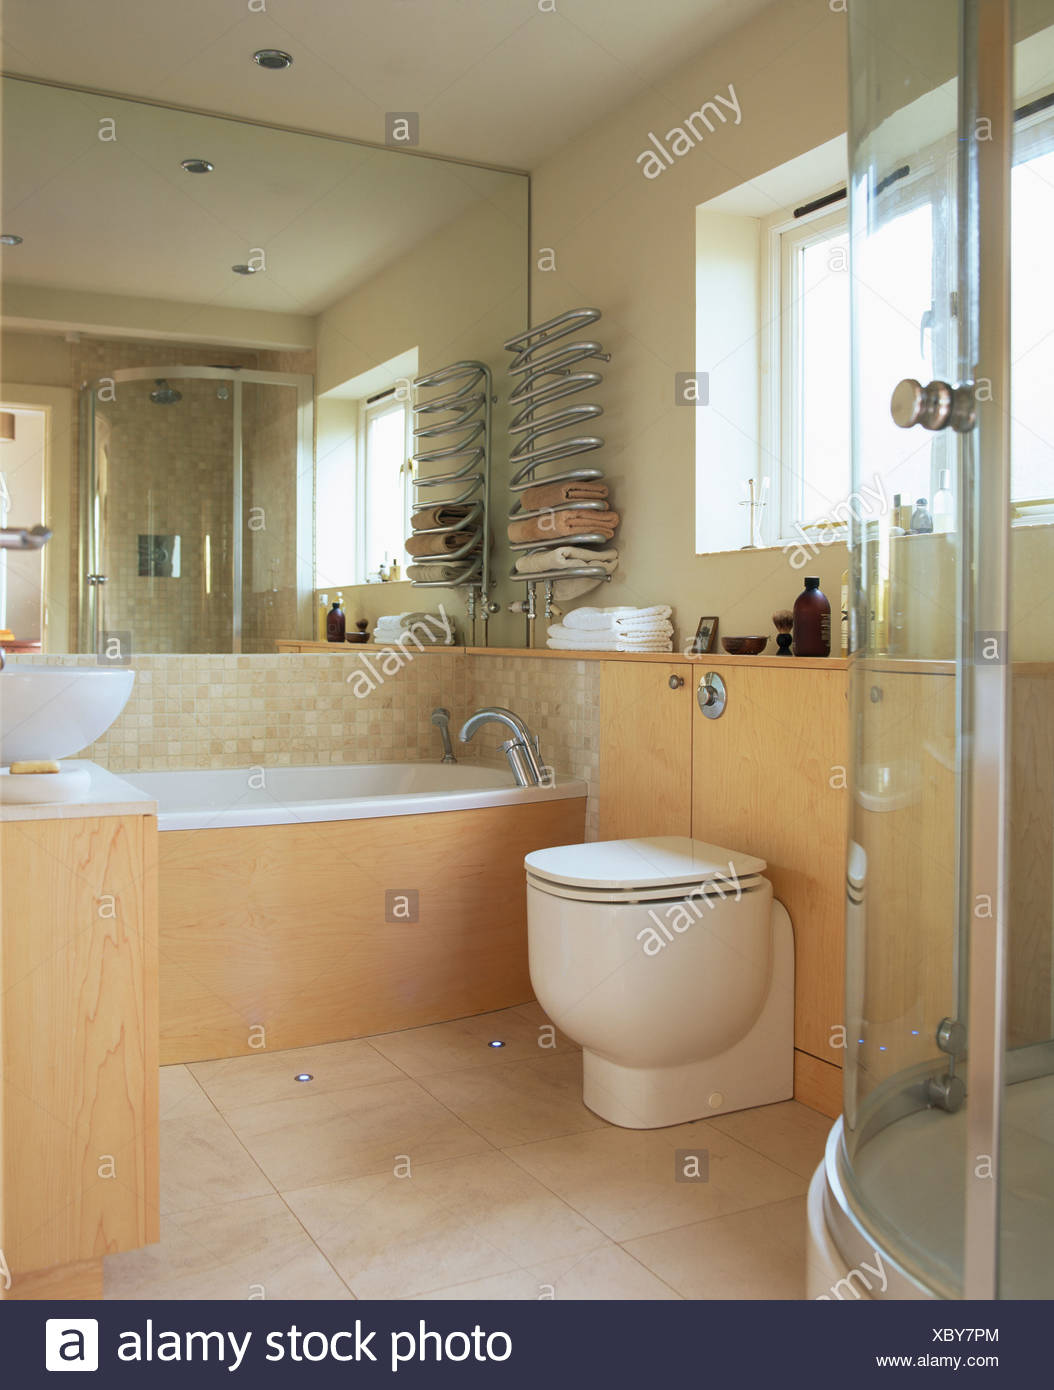 Paneling For Bathroom Mirrored Wall Above Bath In Modern Bathroom With Pale Wood